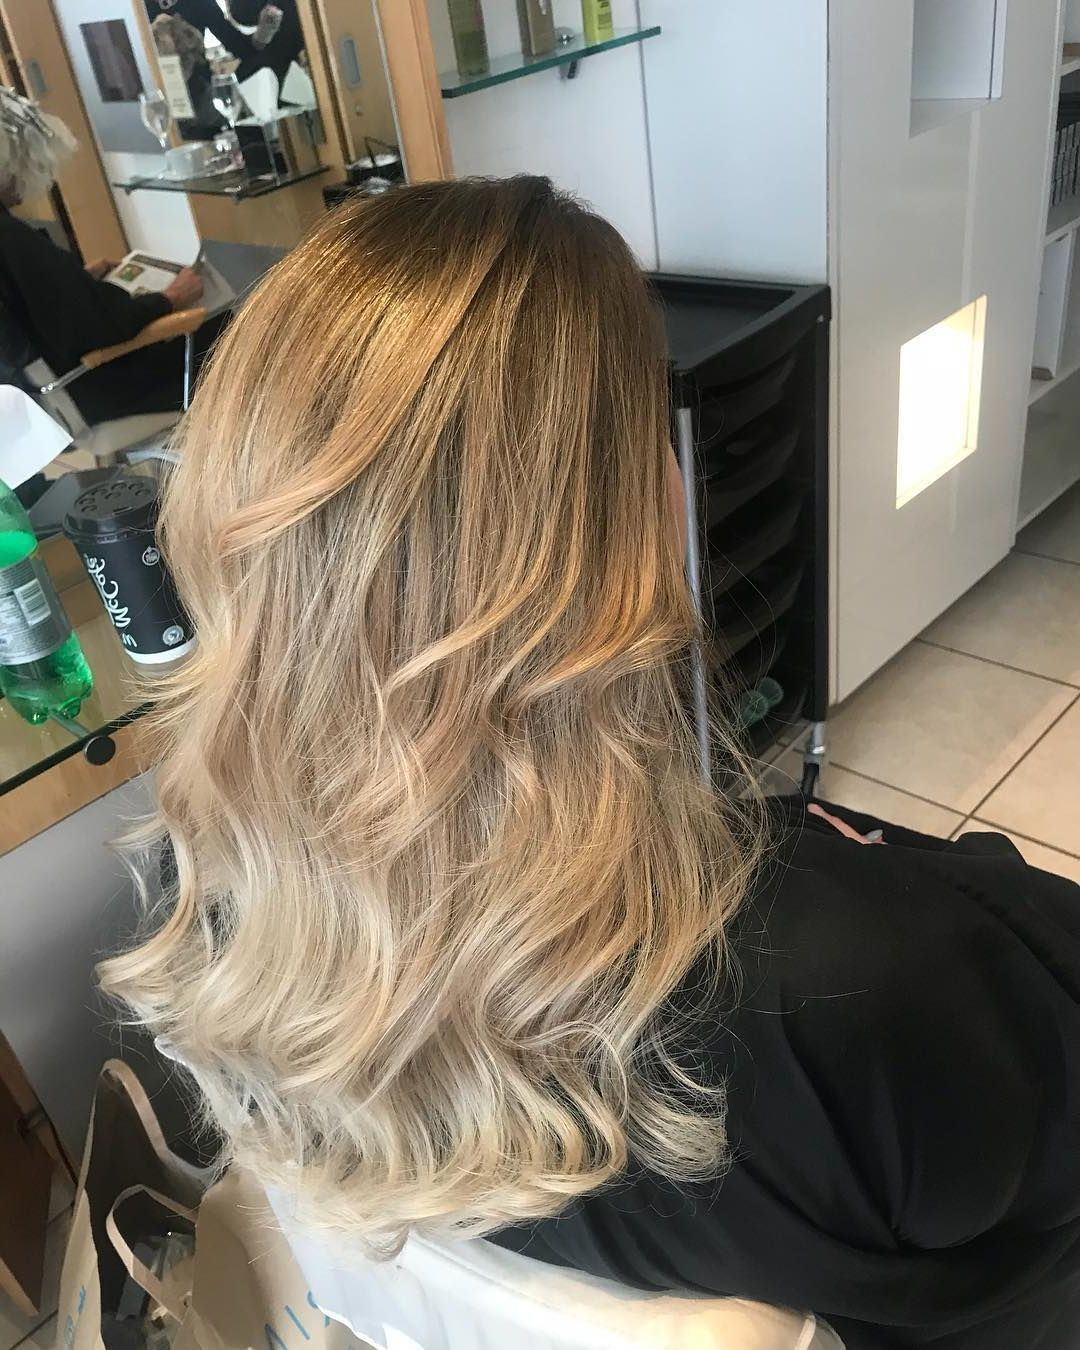 25 Ash Blonde Balayage Hair Color Ideas #lightashblonde 25 Ash Blonde Balayage Hair Color Ideas, Looking for ash blonde balayage hair color ideas? Then, hair color of your own should be darker than typical blonde. Light ash blonde balayage may tru..., Balayage #lightashblonde 25 Ash Blonde Balayage Hair Color Ideas #lightashblonde 25 Ash Blonde Balayage Hair Color Ideas, Looking for ash blonde balayage hair color ideas? Then, hair color of your own should be darker than typical blonde. Light ash #ashblondebalayage